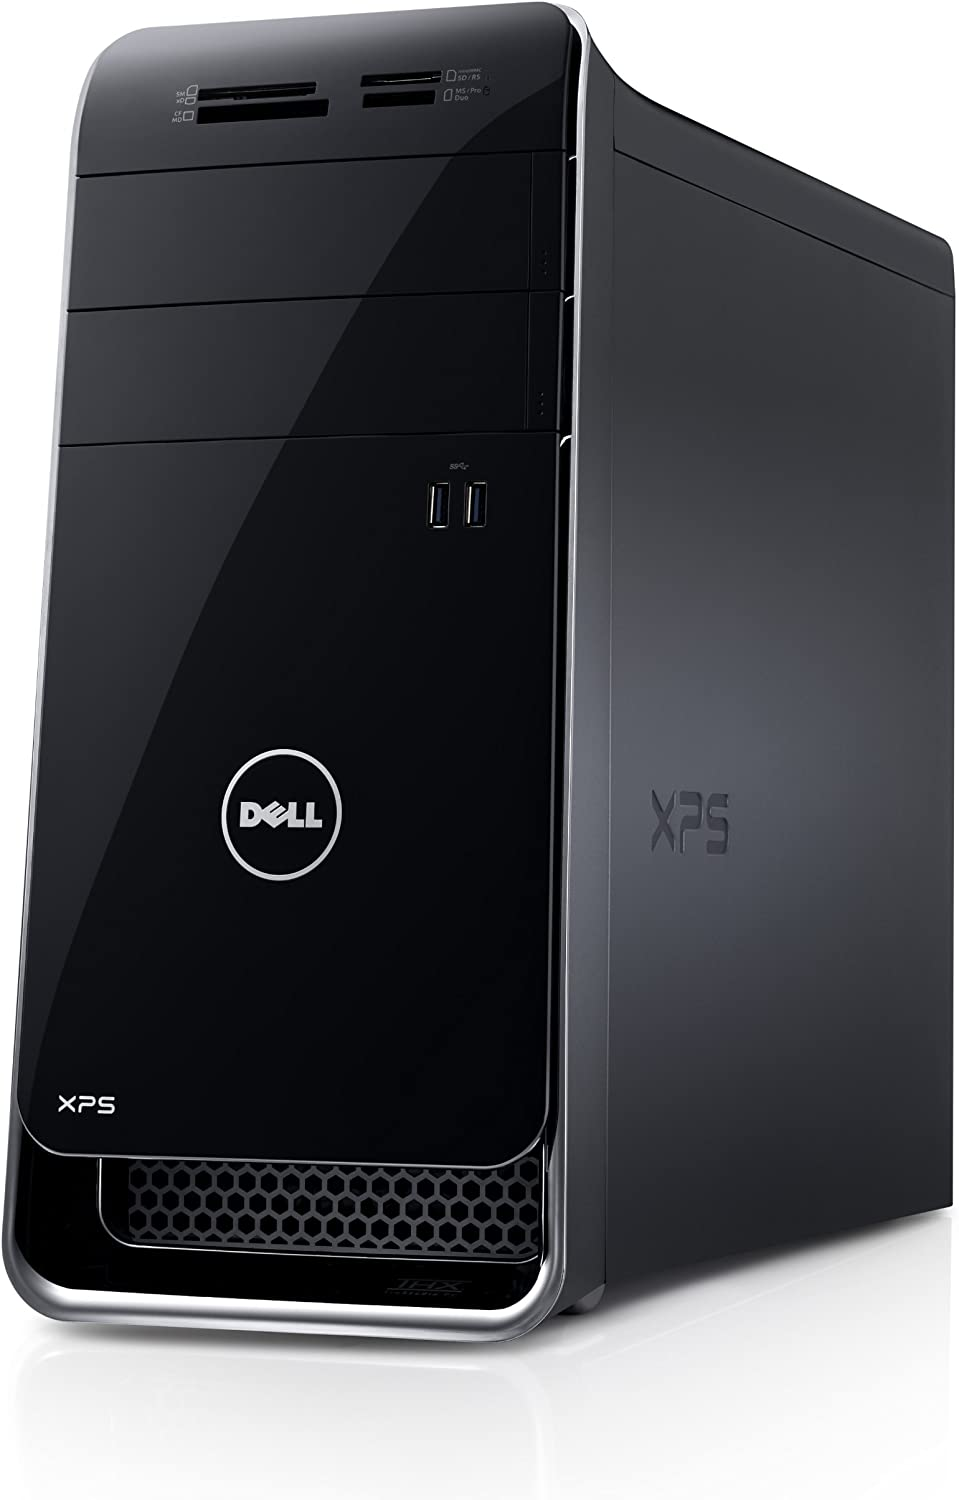 Dell XPS X8700-625BLK Desktop (3.0 GHz Intel Core i5-4430 Processor, 8GB DDR3, 1TB HDD, AMD Radeon HD 7570, Windows 8) Black [Discontinued By Manufacturer]